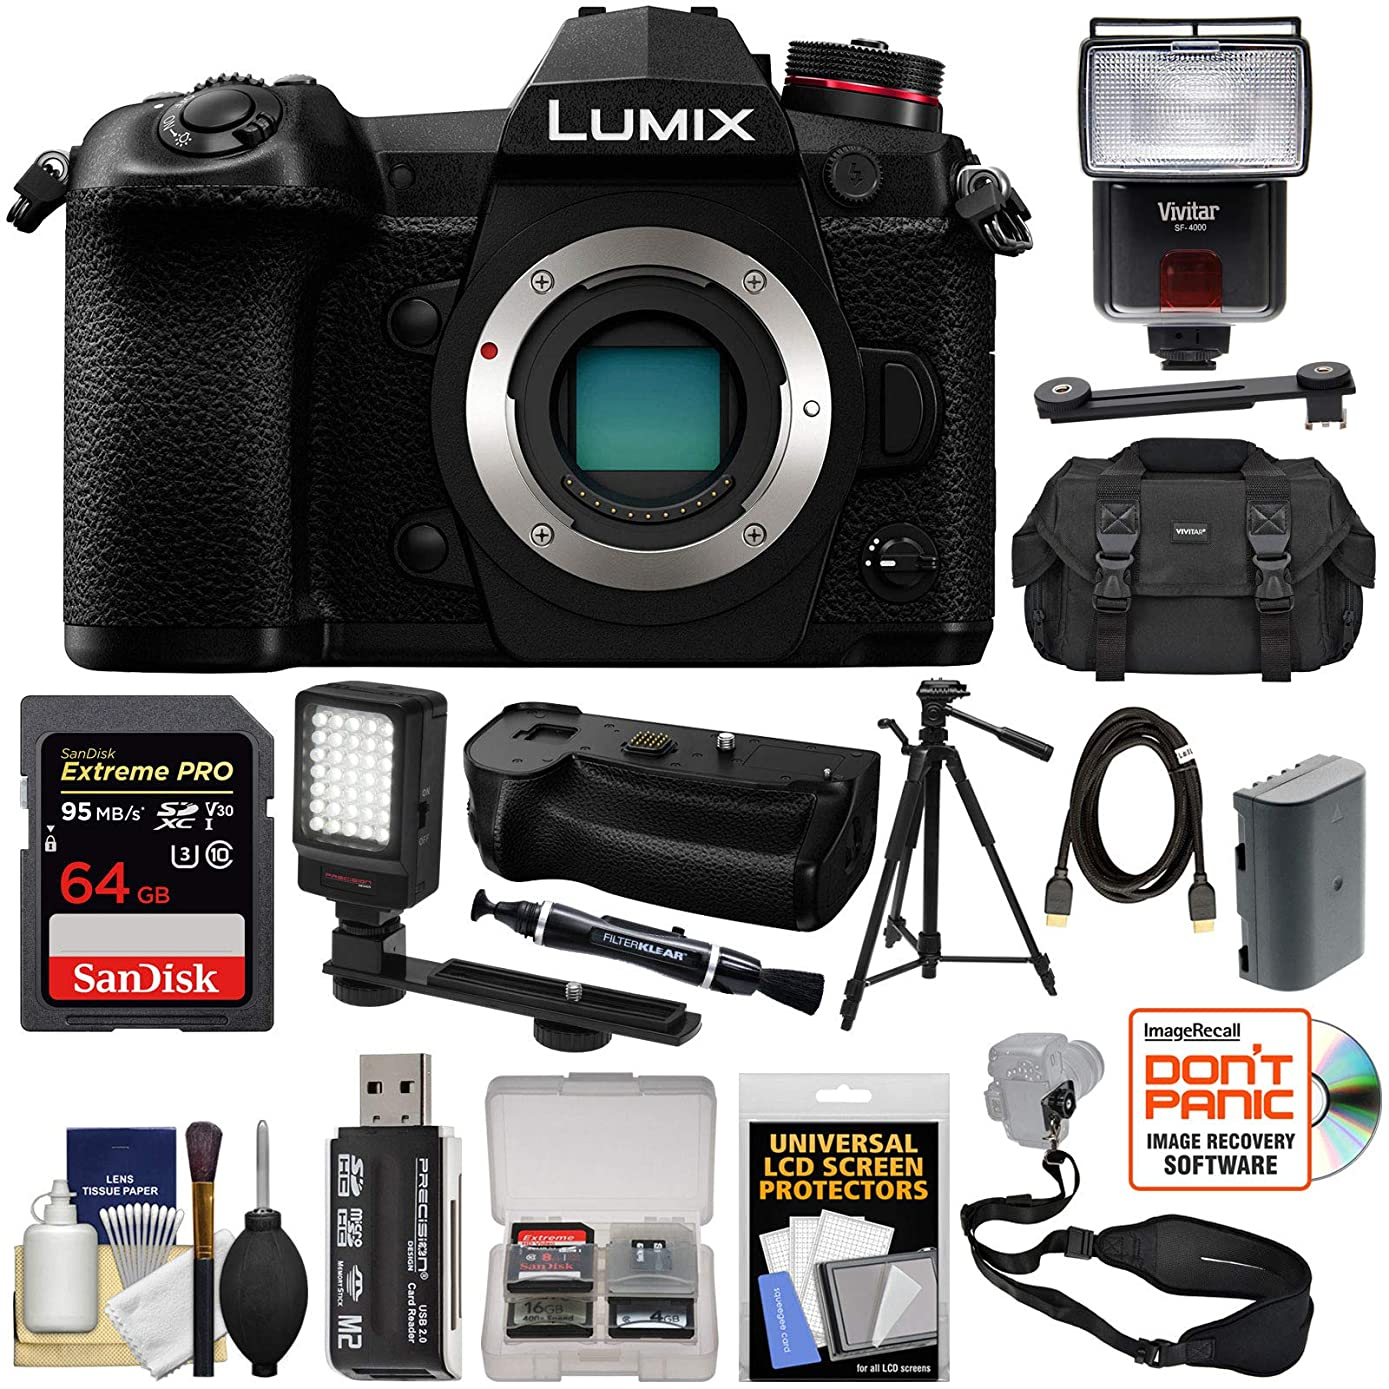 Panasonic Lumix DC-G9 4K Wi-Fi Digital Camera Body with DMW-BGG9 Battery Grip + 64GB Card + Battery + Case + Flash + LED Light + Tripod Kit